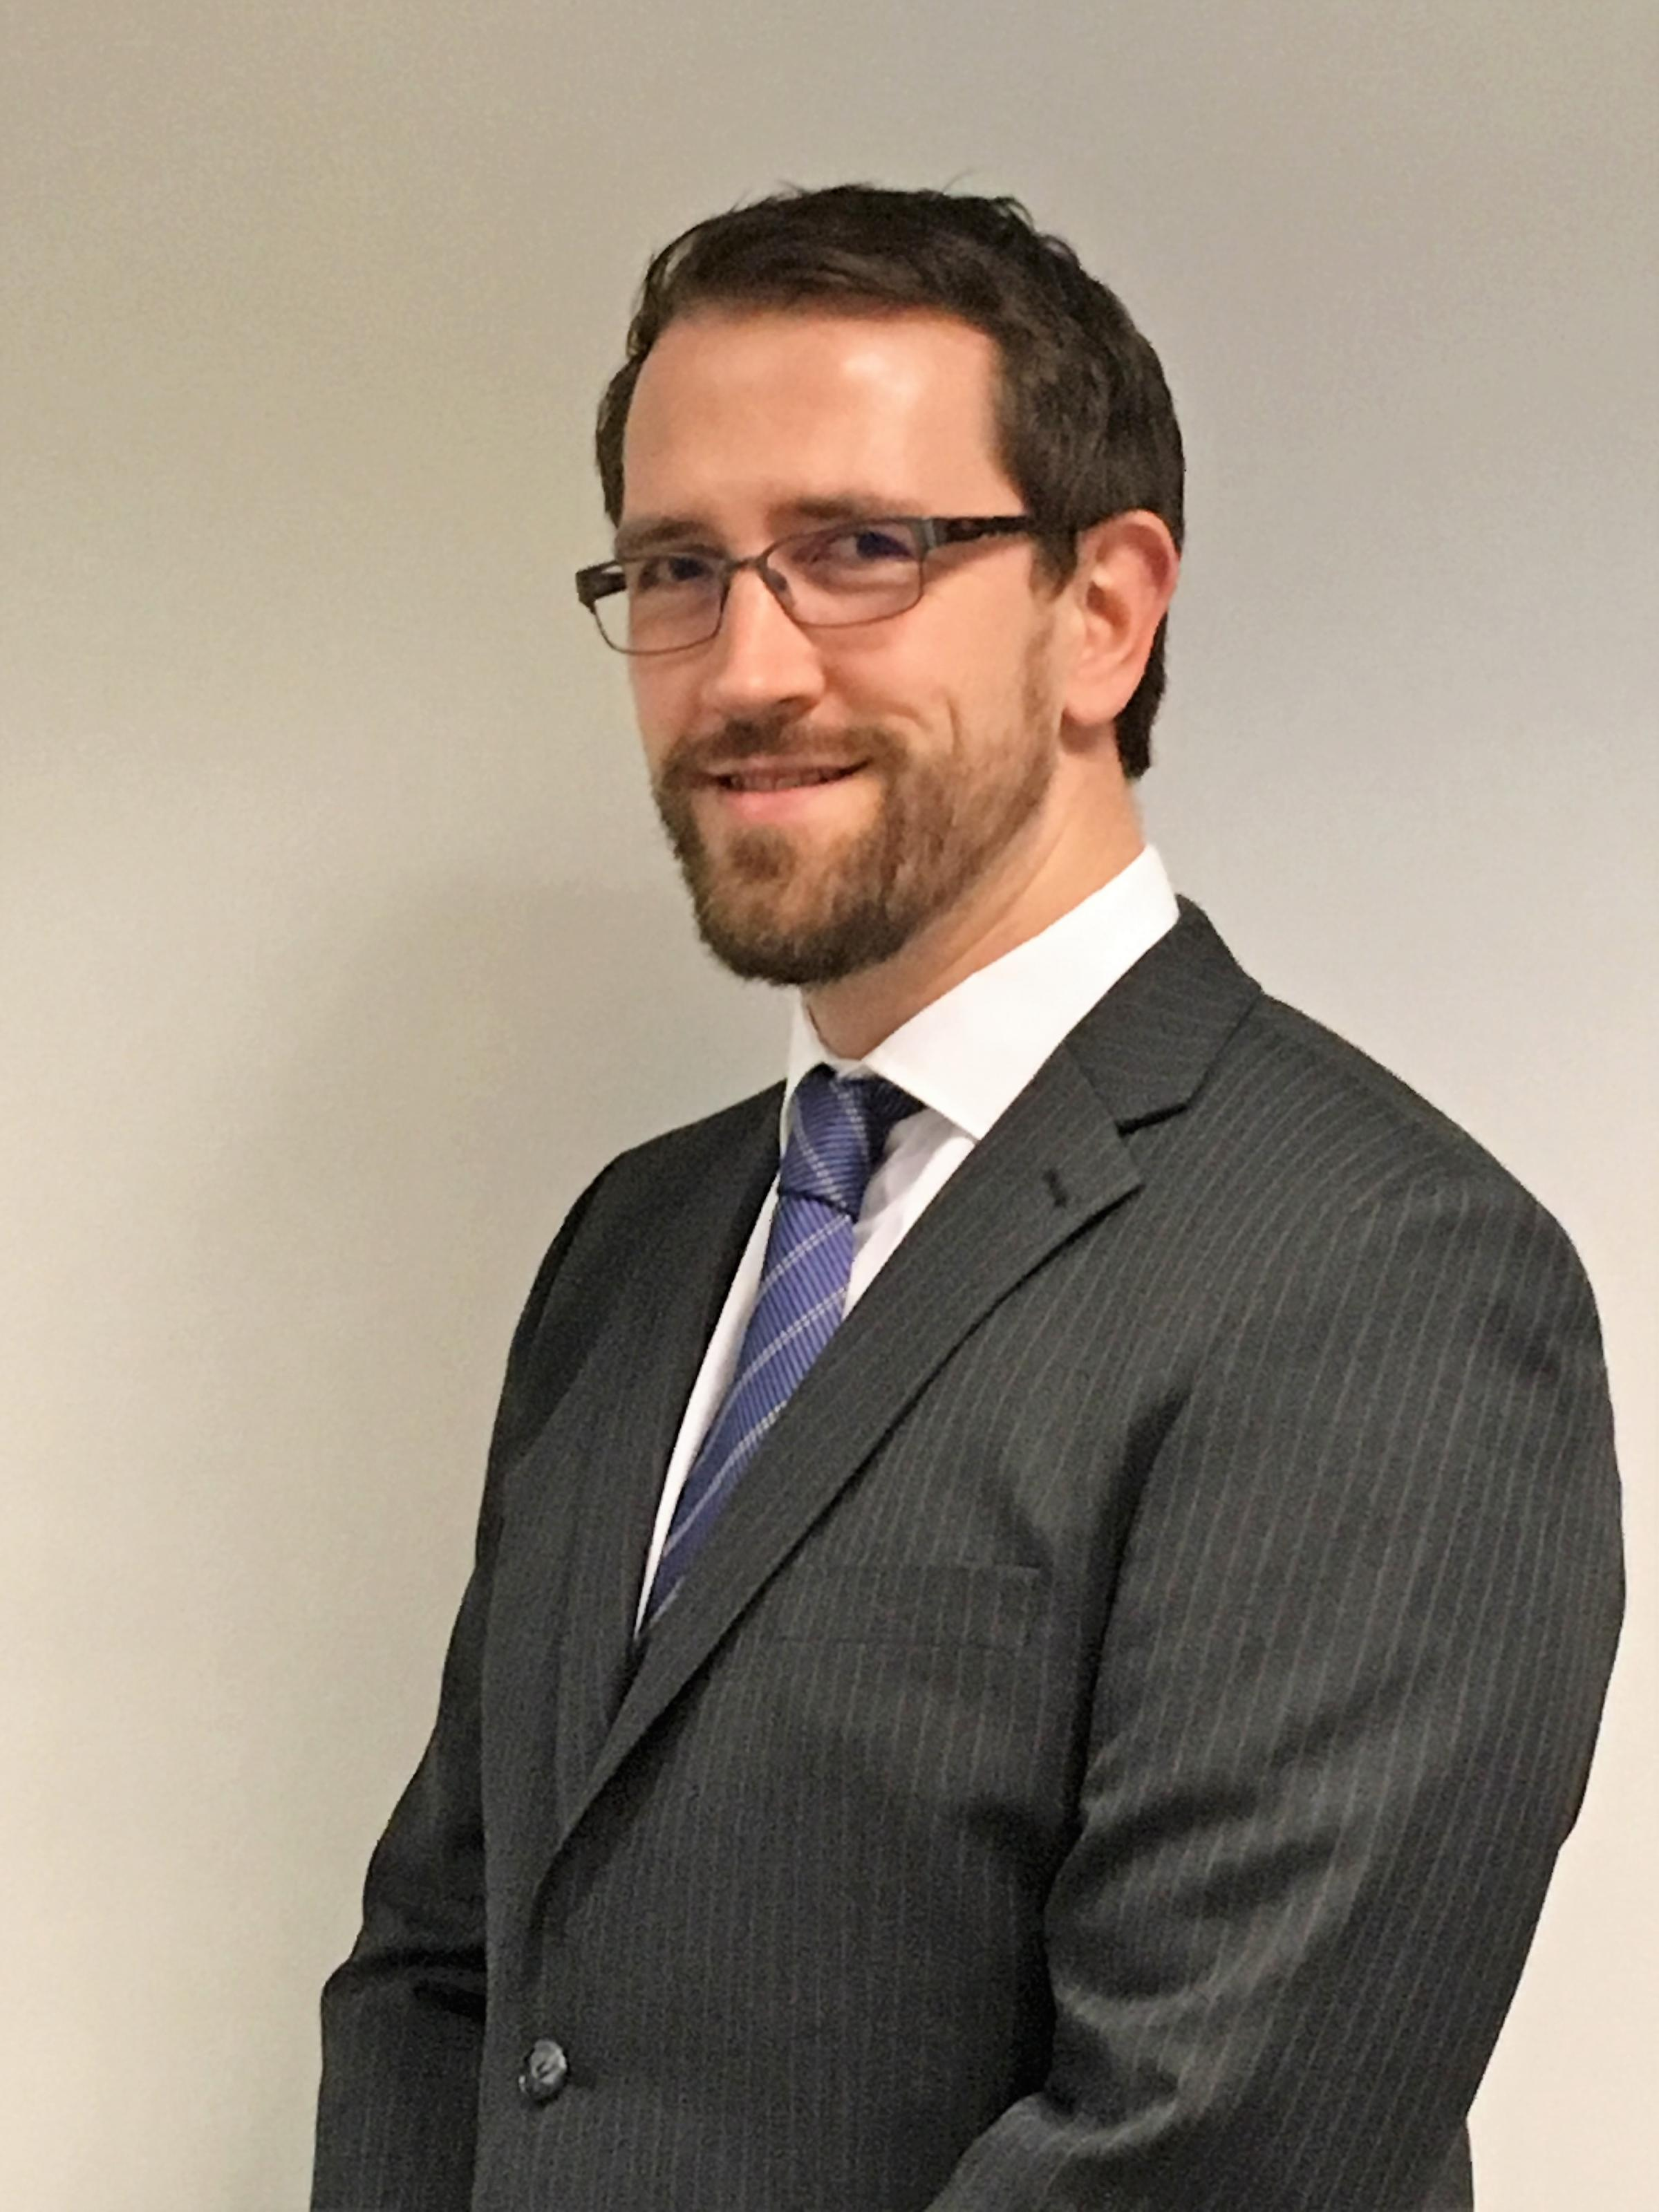 David Lewis, head of employment law at Howells Solicitors